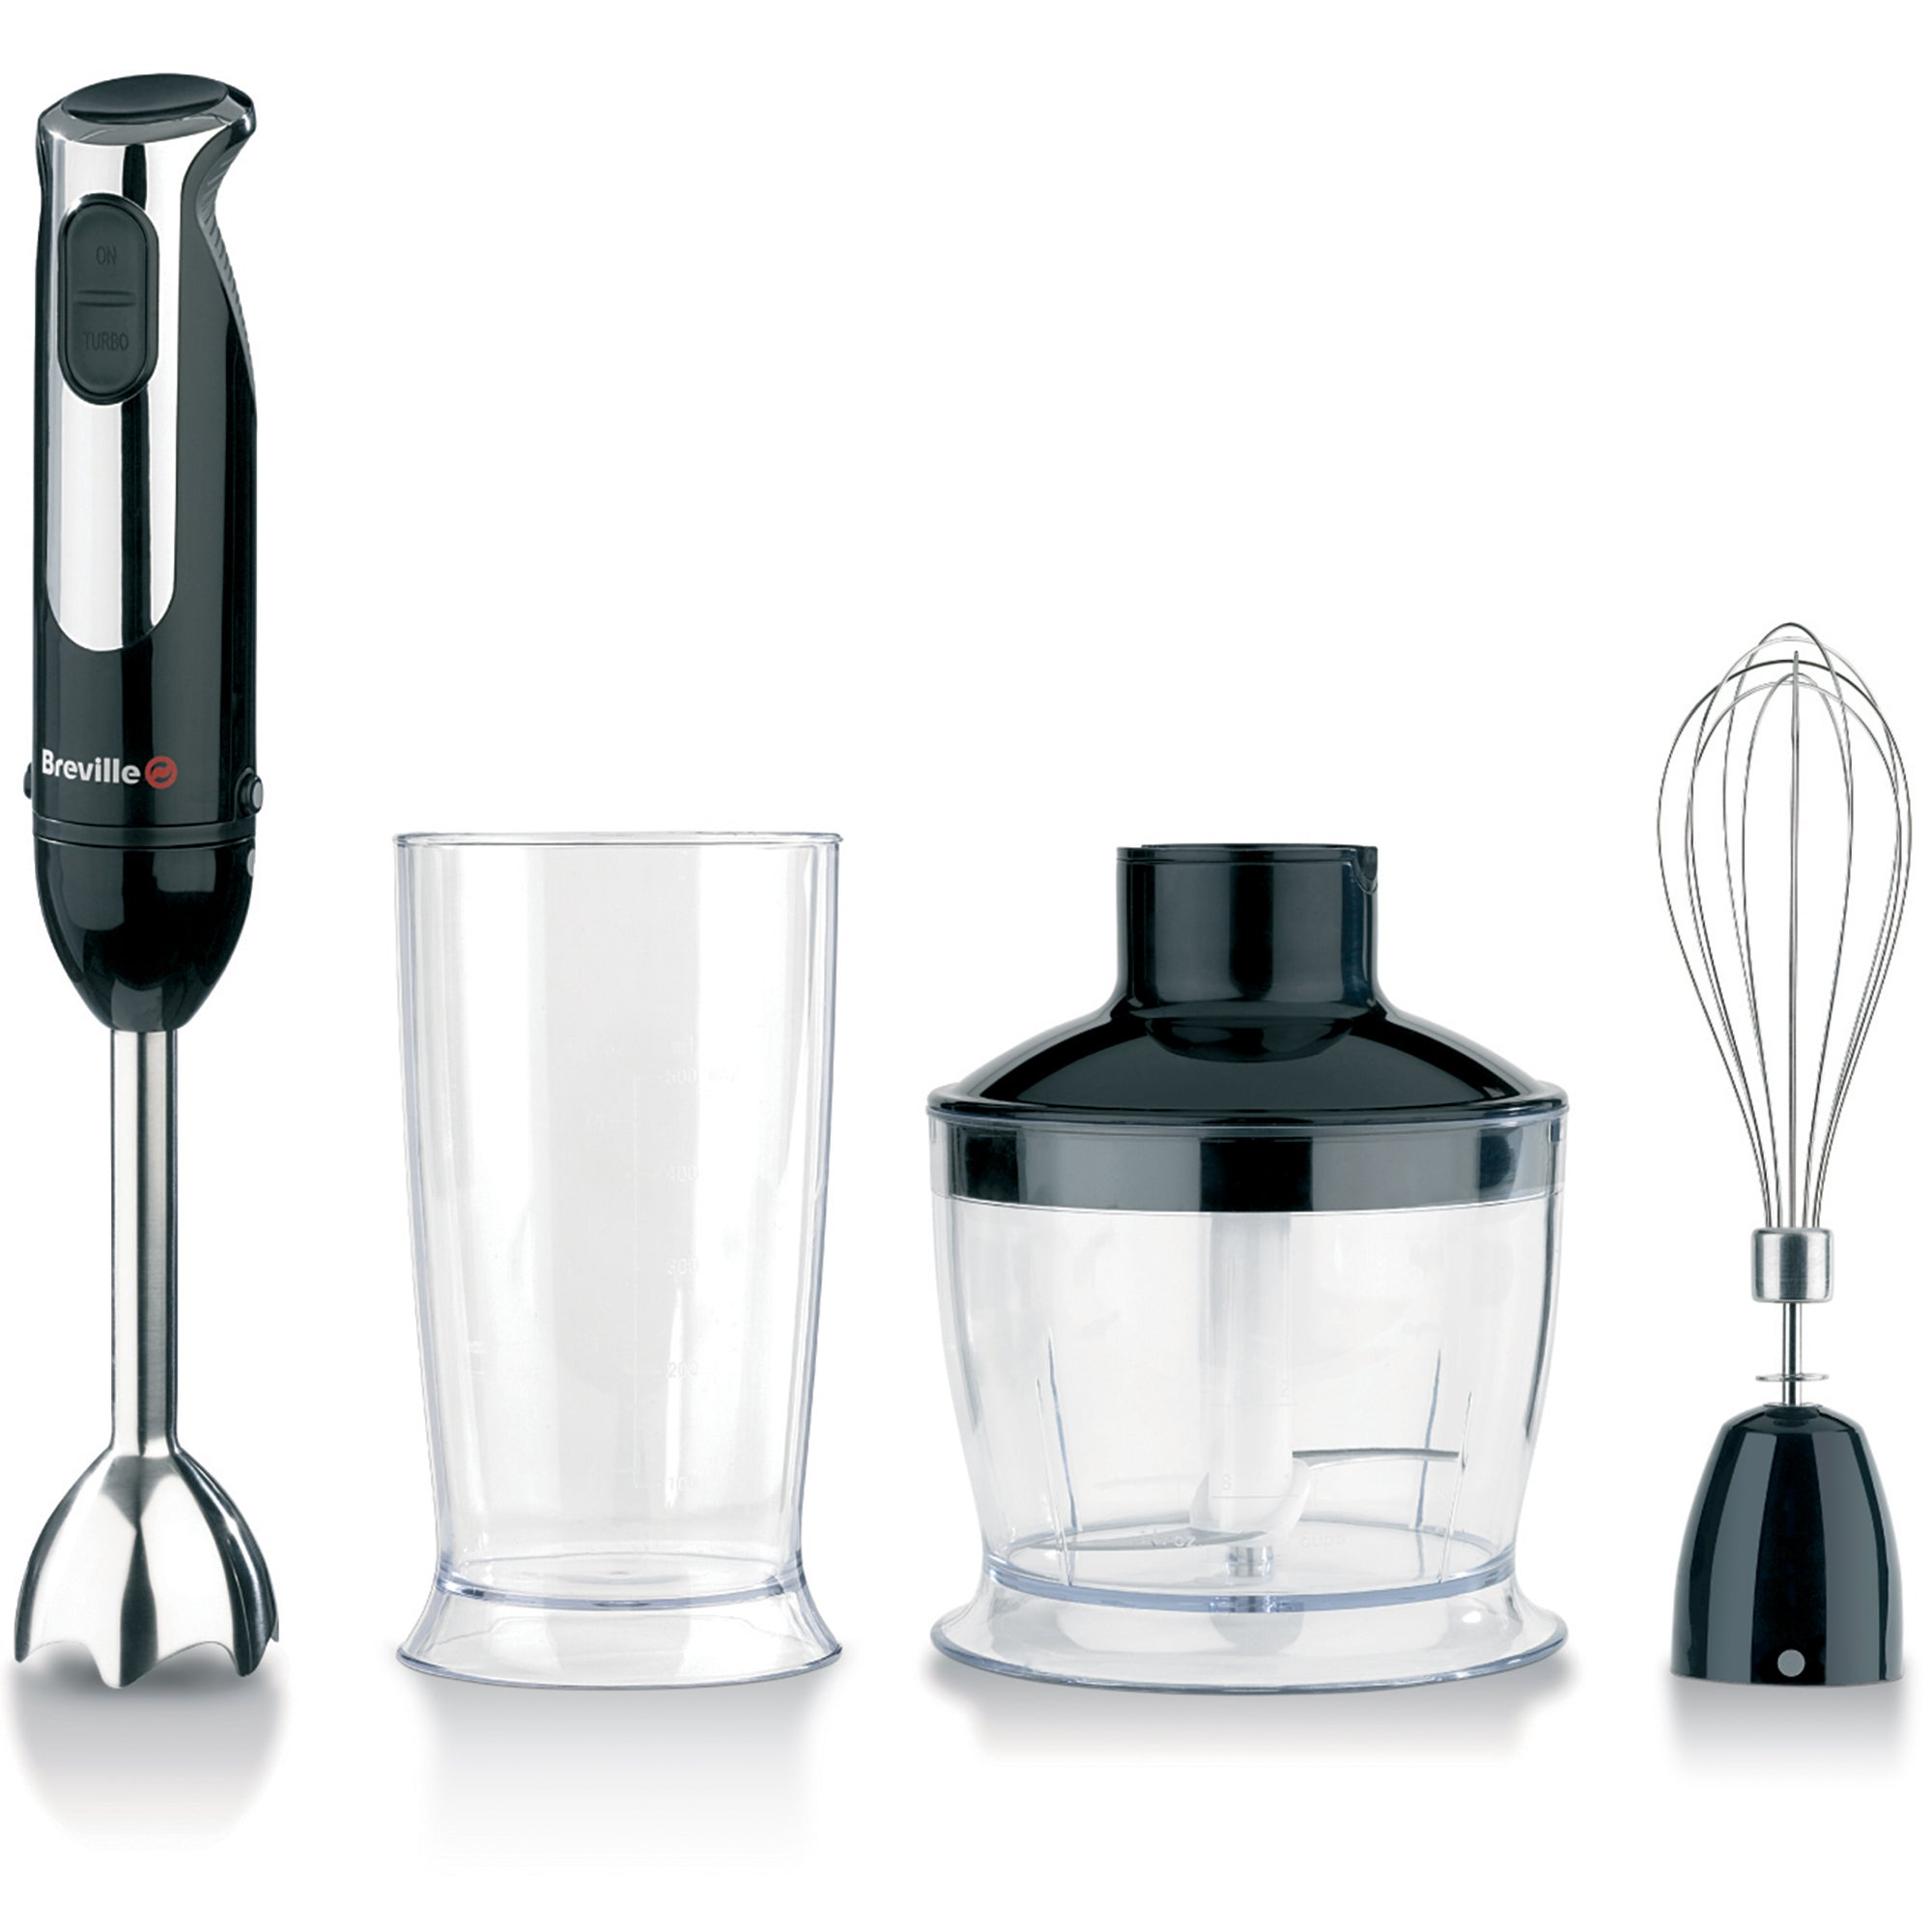 Breville VHB060 3-in-1 Hand Blender